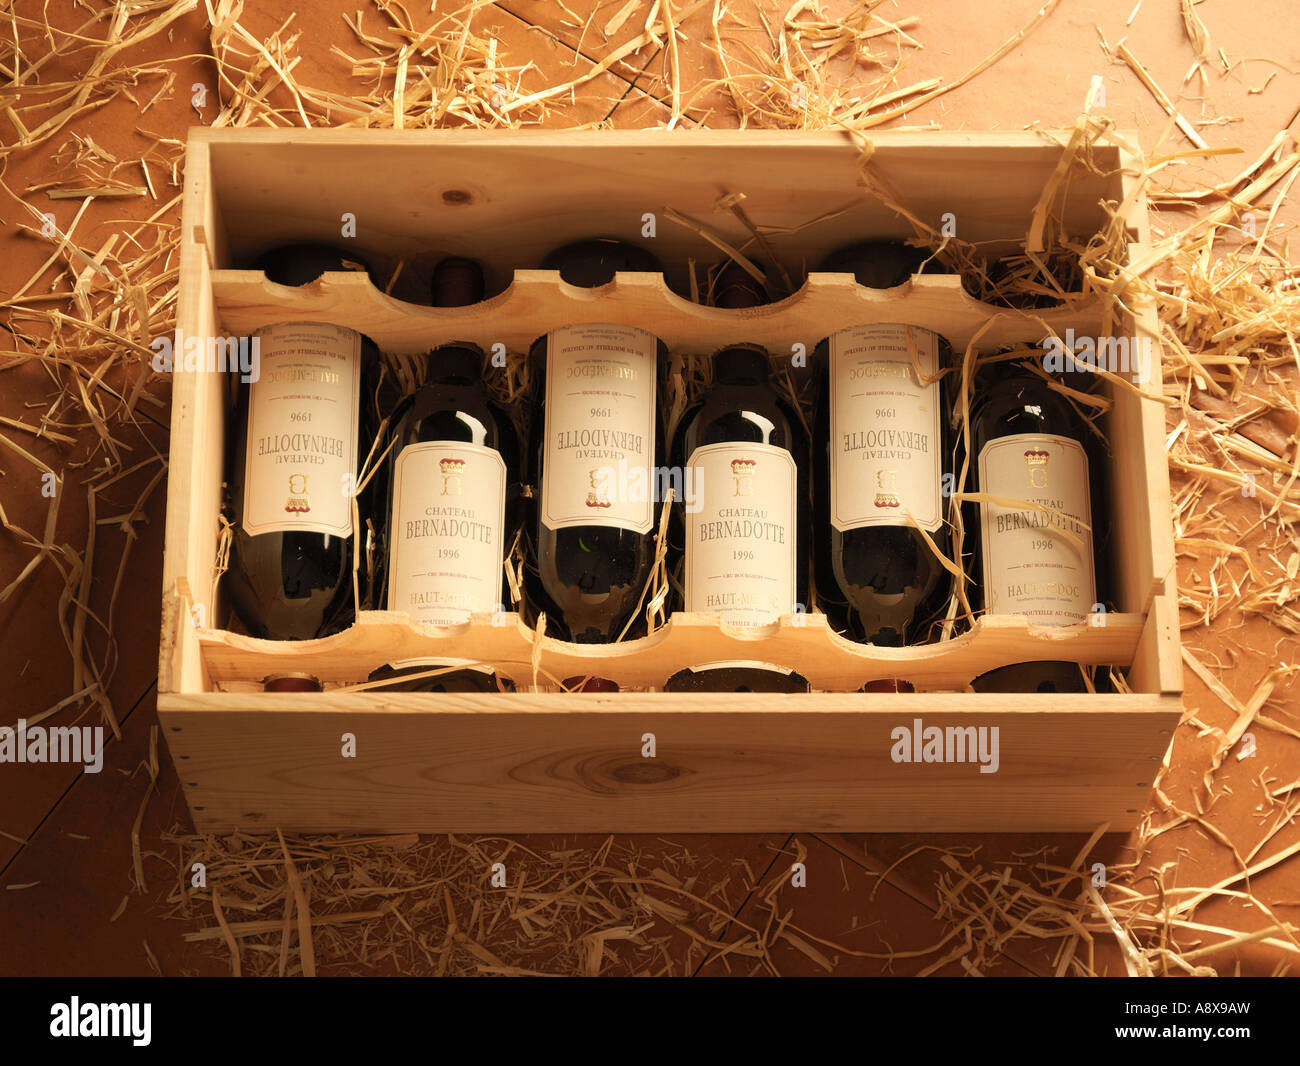 Bottles Of Red Bordeaux Wine In A Wooden Wine Box On A Bed